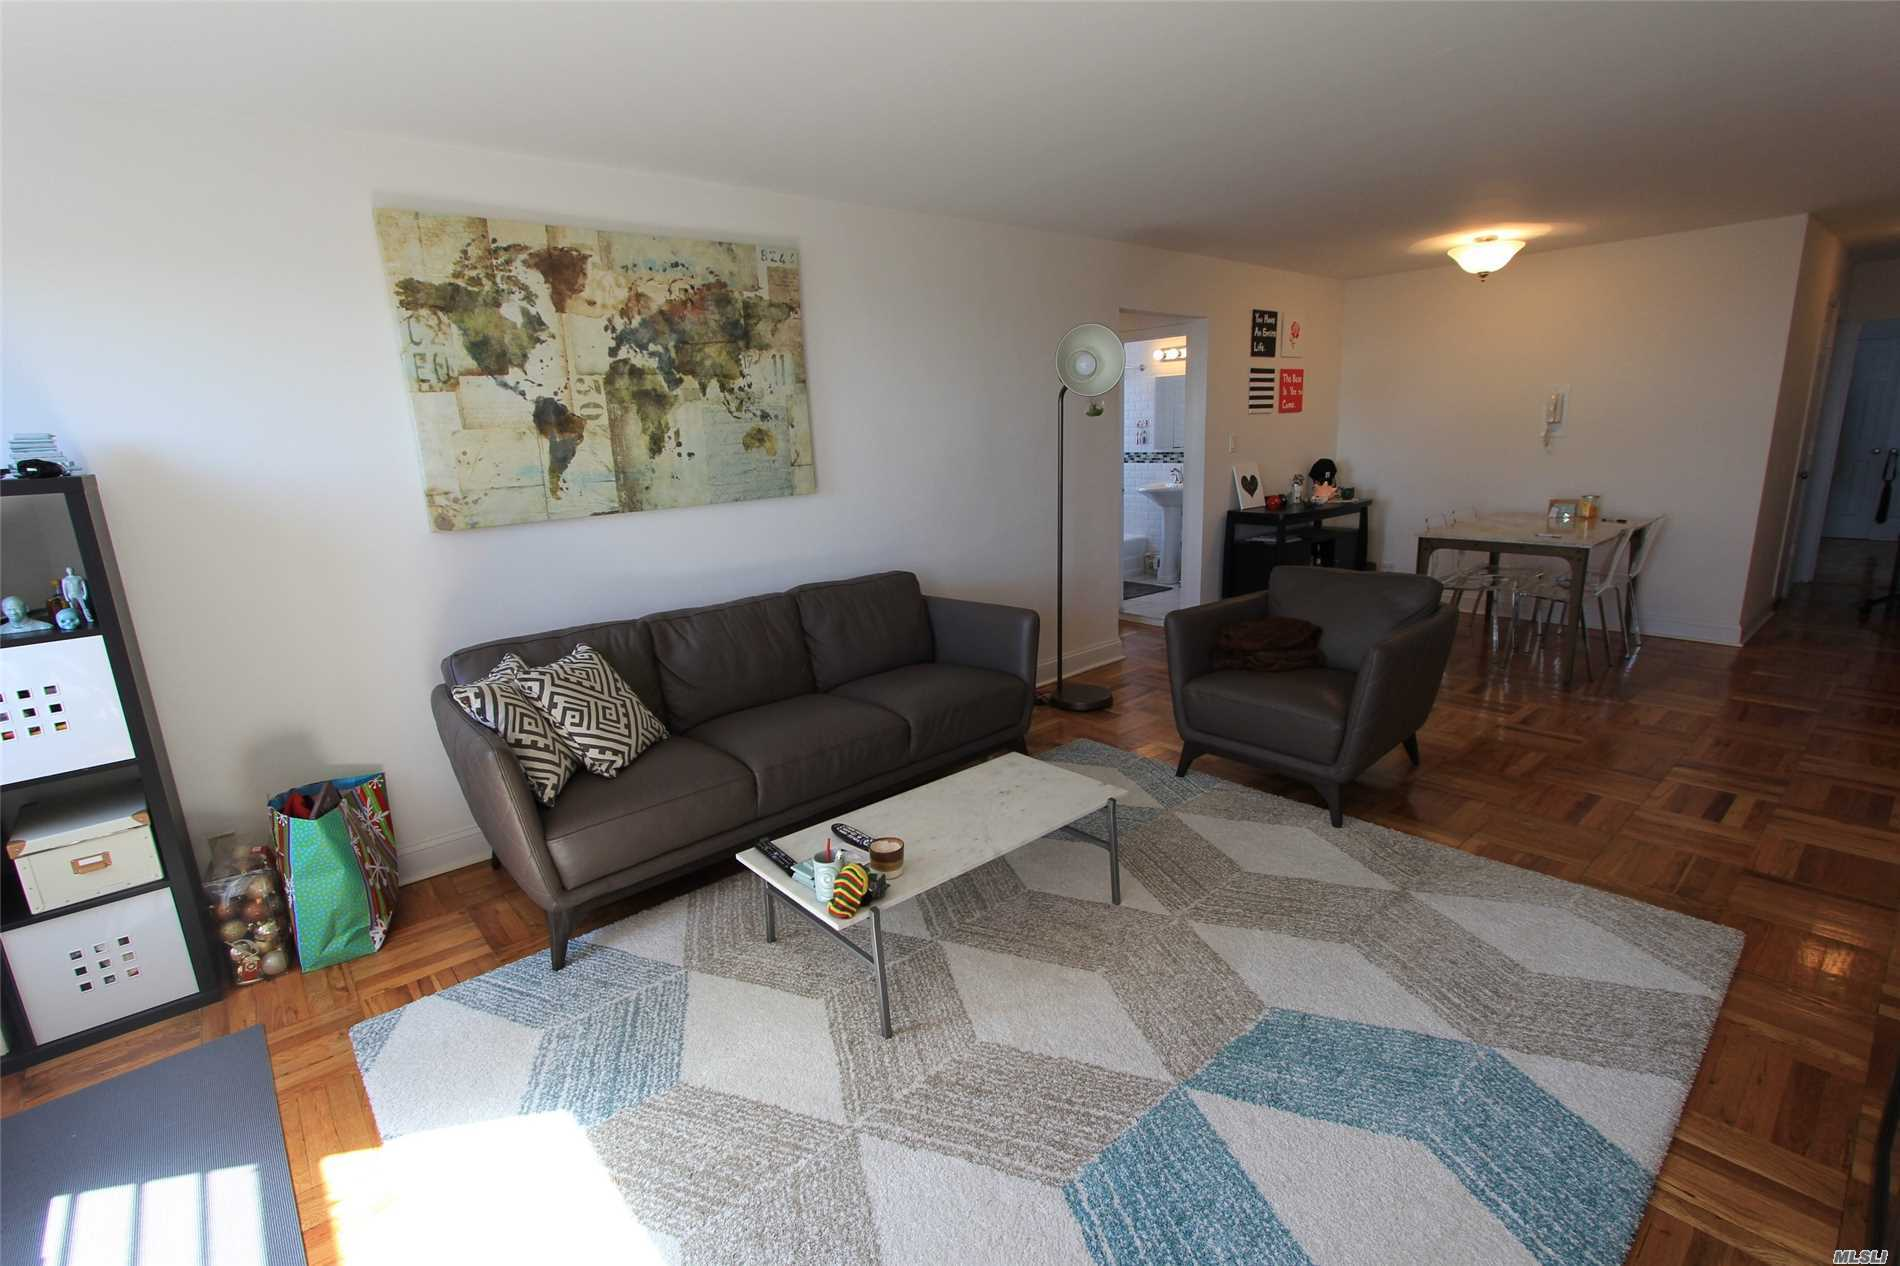 Large Junior 4/2Br, Brand New High End Kitchen With Stone Counters And All Stainless Steel Appliacned Including A Dishwasher And A Build-In Microwave,    Renovated Tile Bathroom Windowed, Lots Of Closet & A Huge Walk-In Closet In Master Bedroom, Amazing 180 Biews (Manhattan And Lake Views), Doorman On Site, Super Onsite, Laundry Rooms On Each Floor, Gym, Garage And Roof Top.